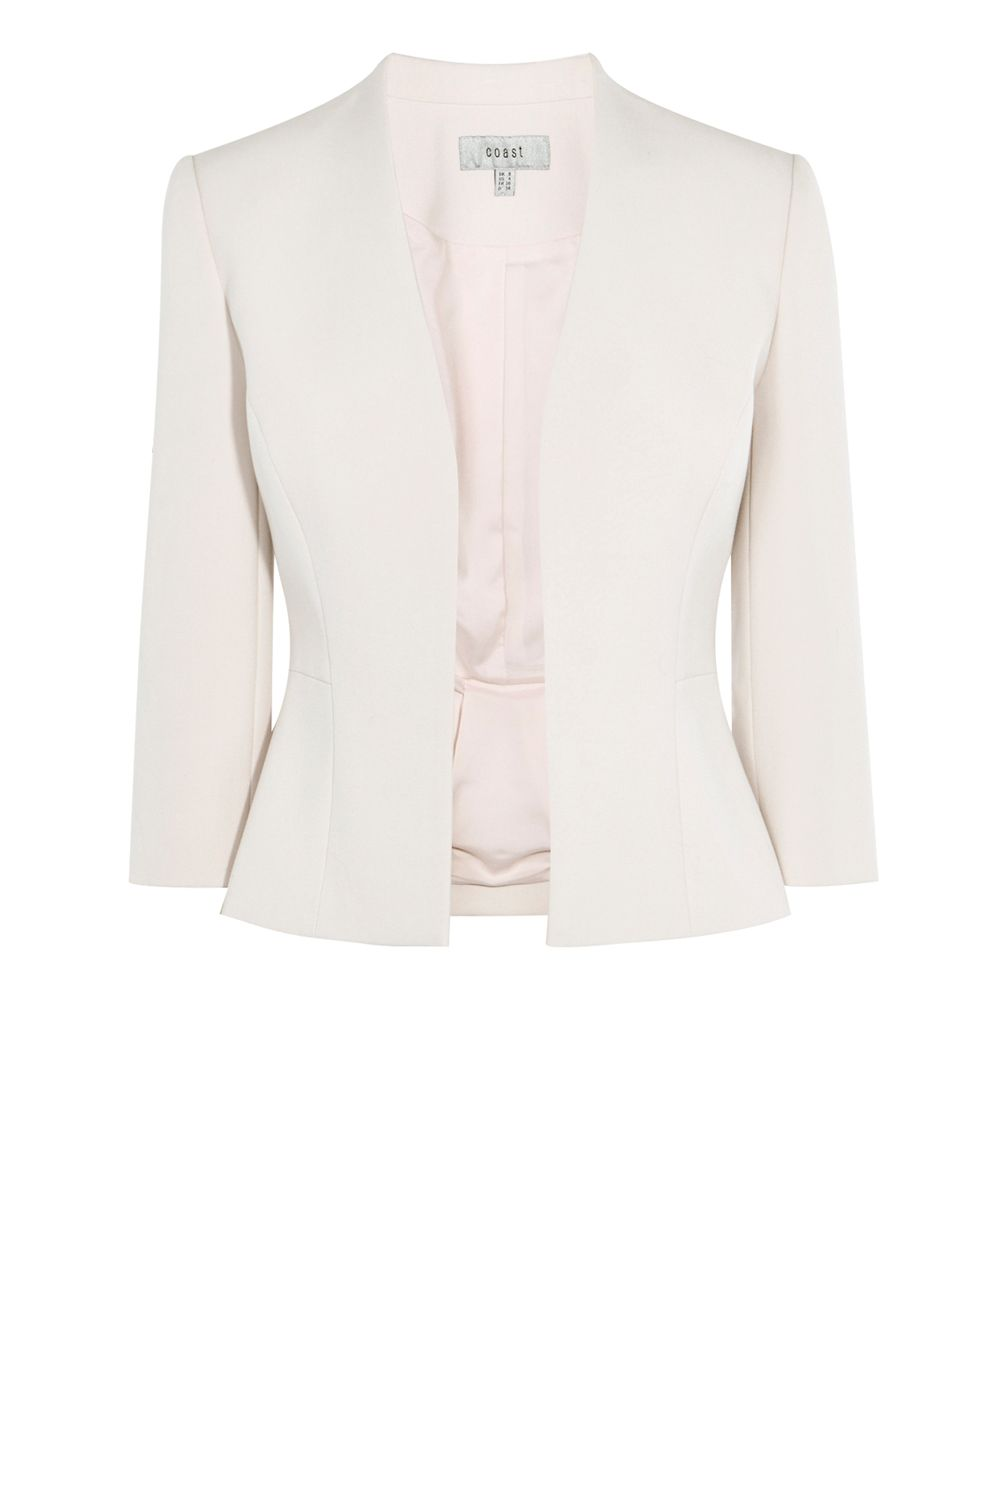 Coast Deandra Short Peplum Jacket, Pink